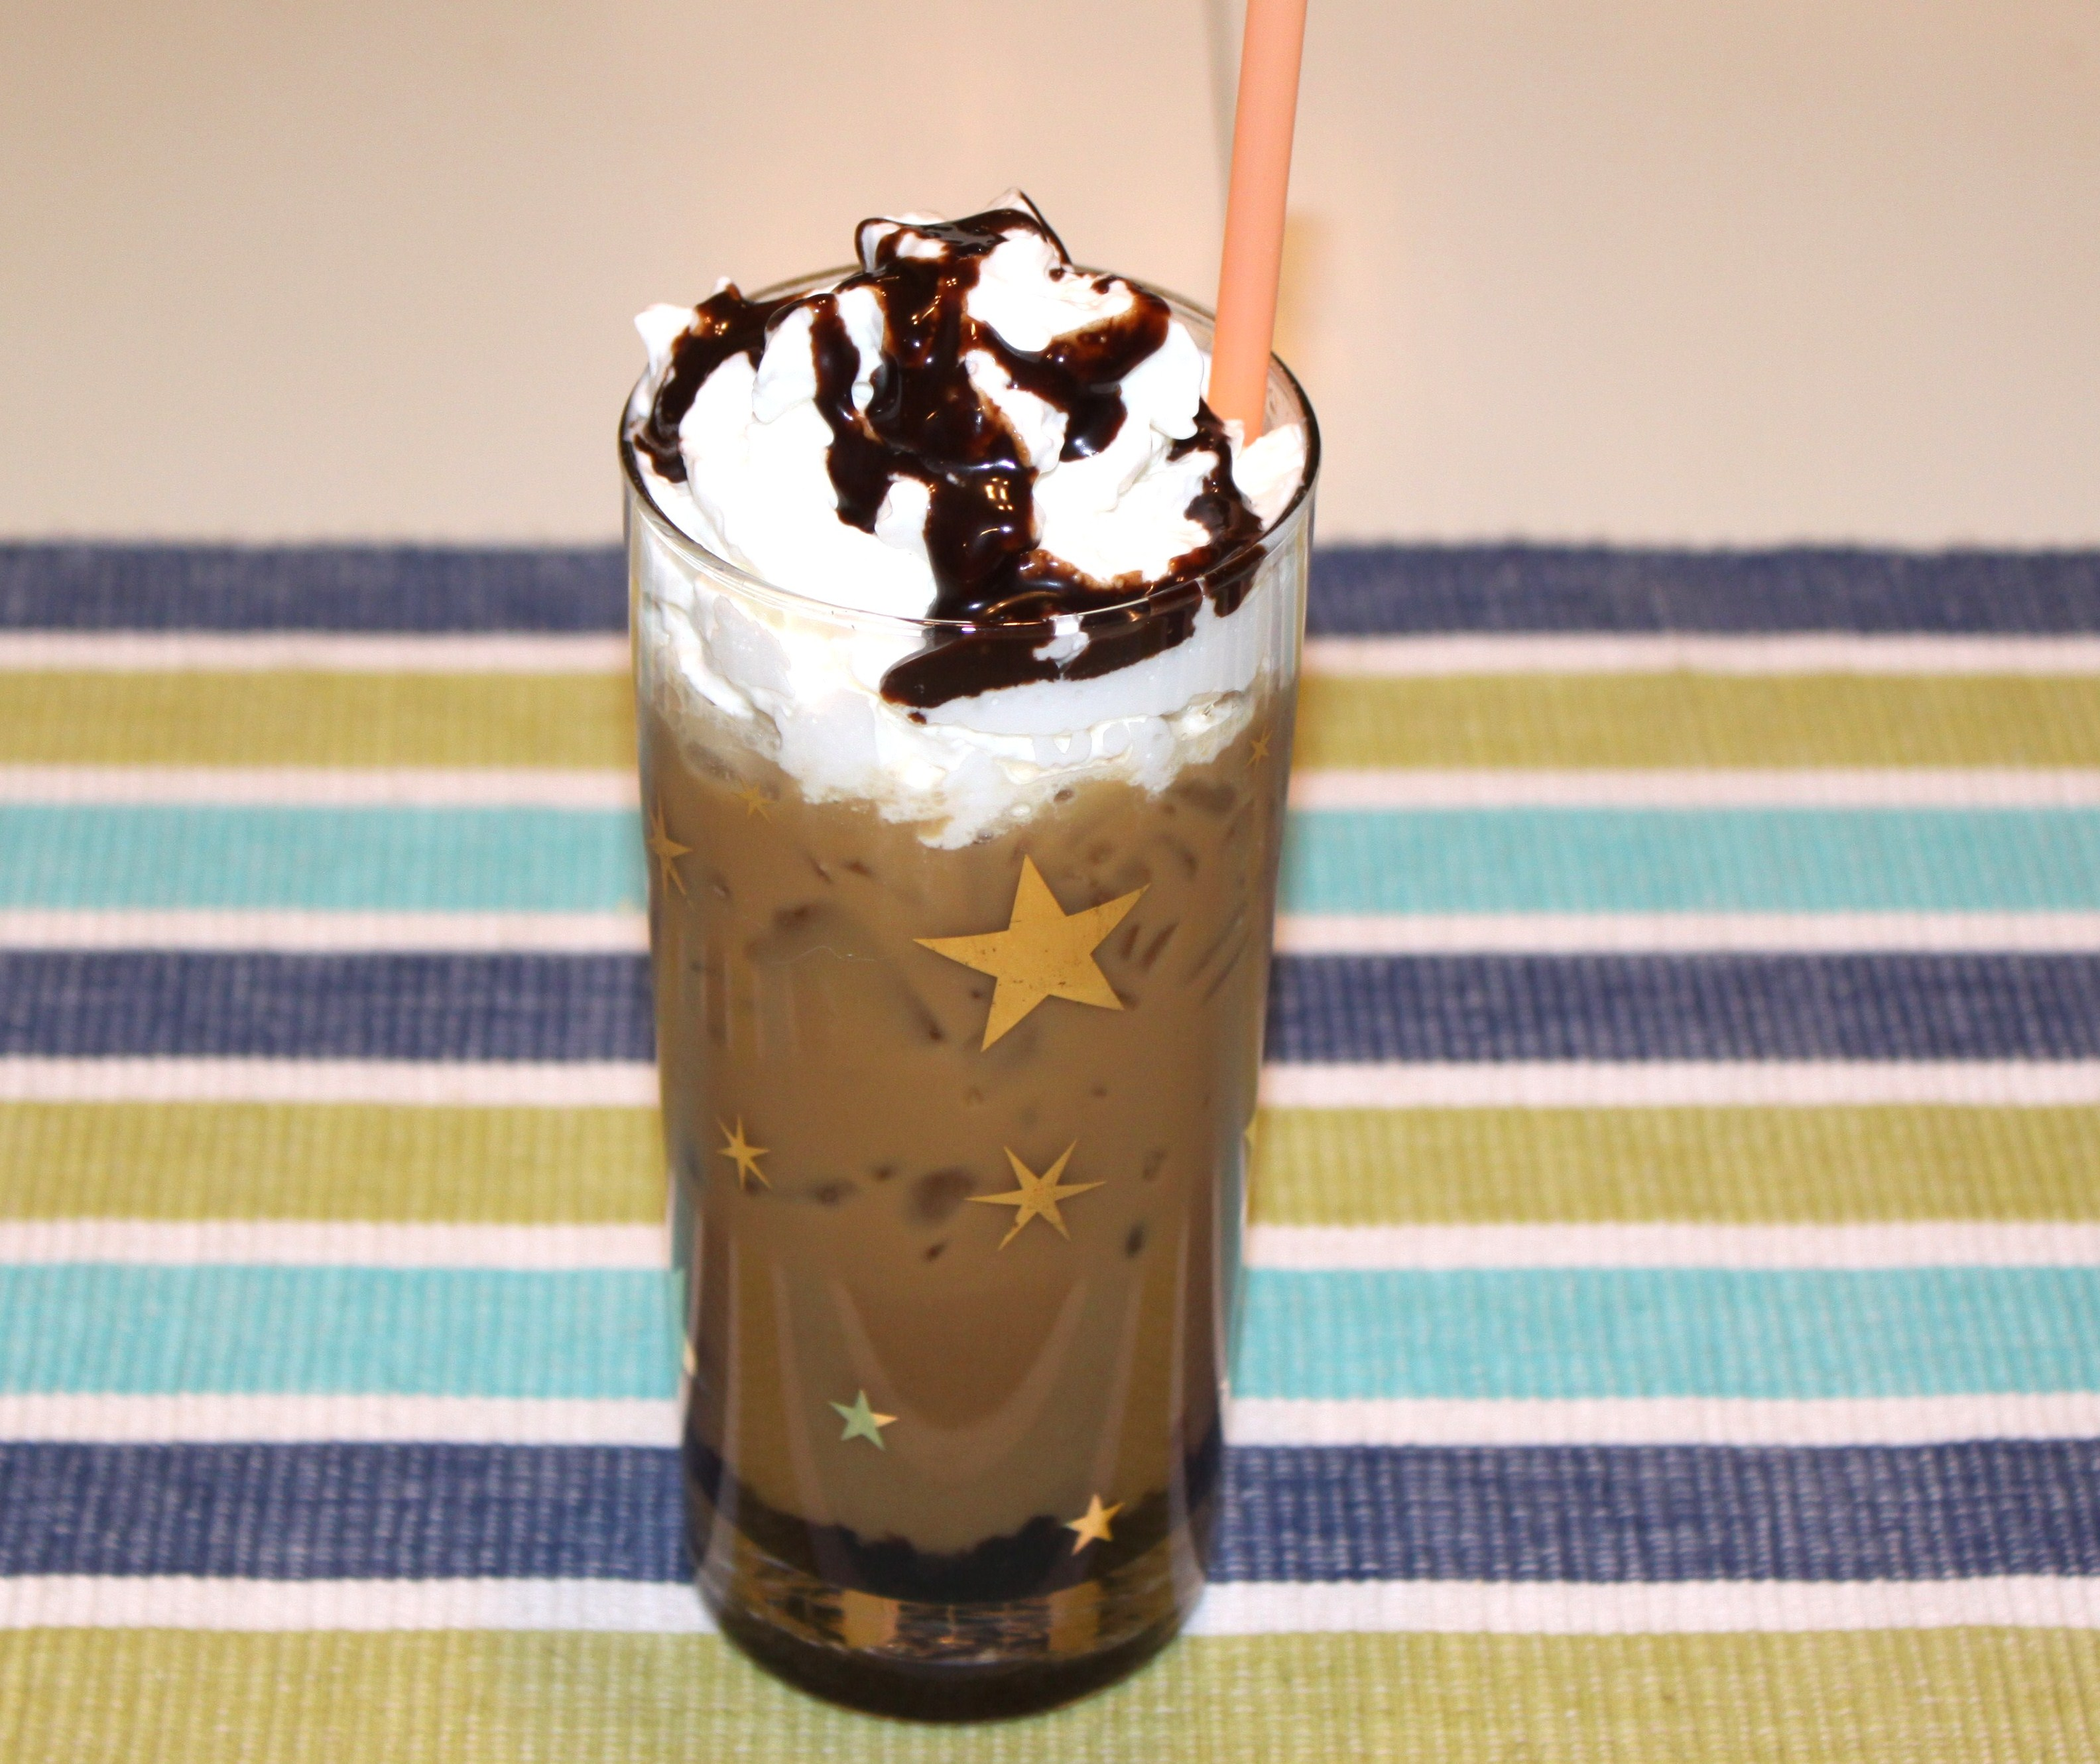 How To Make A McDonald's McCafe Iced Mocha At Home